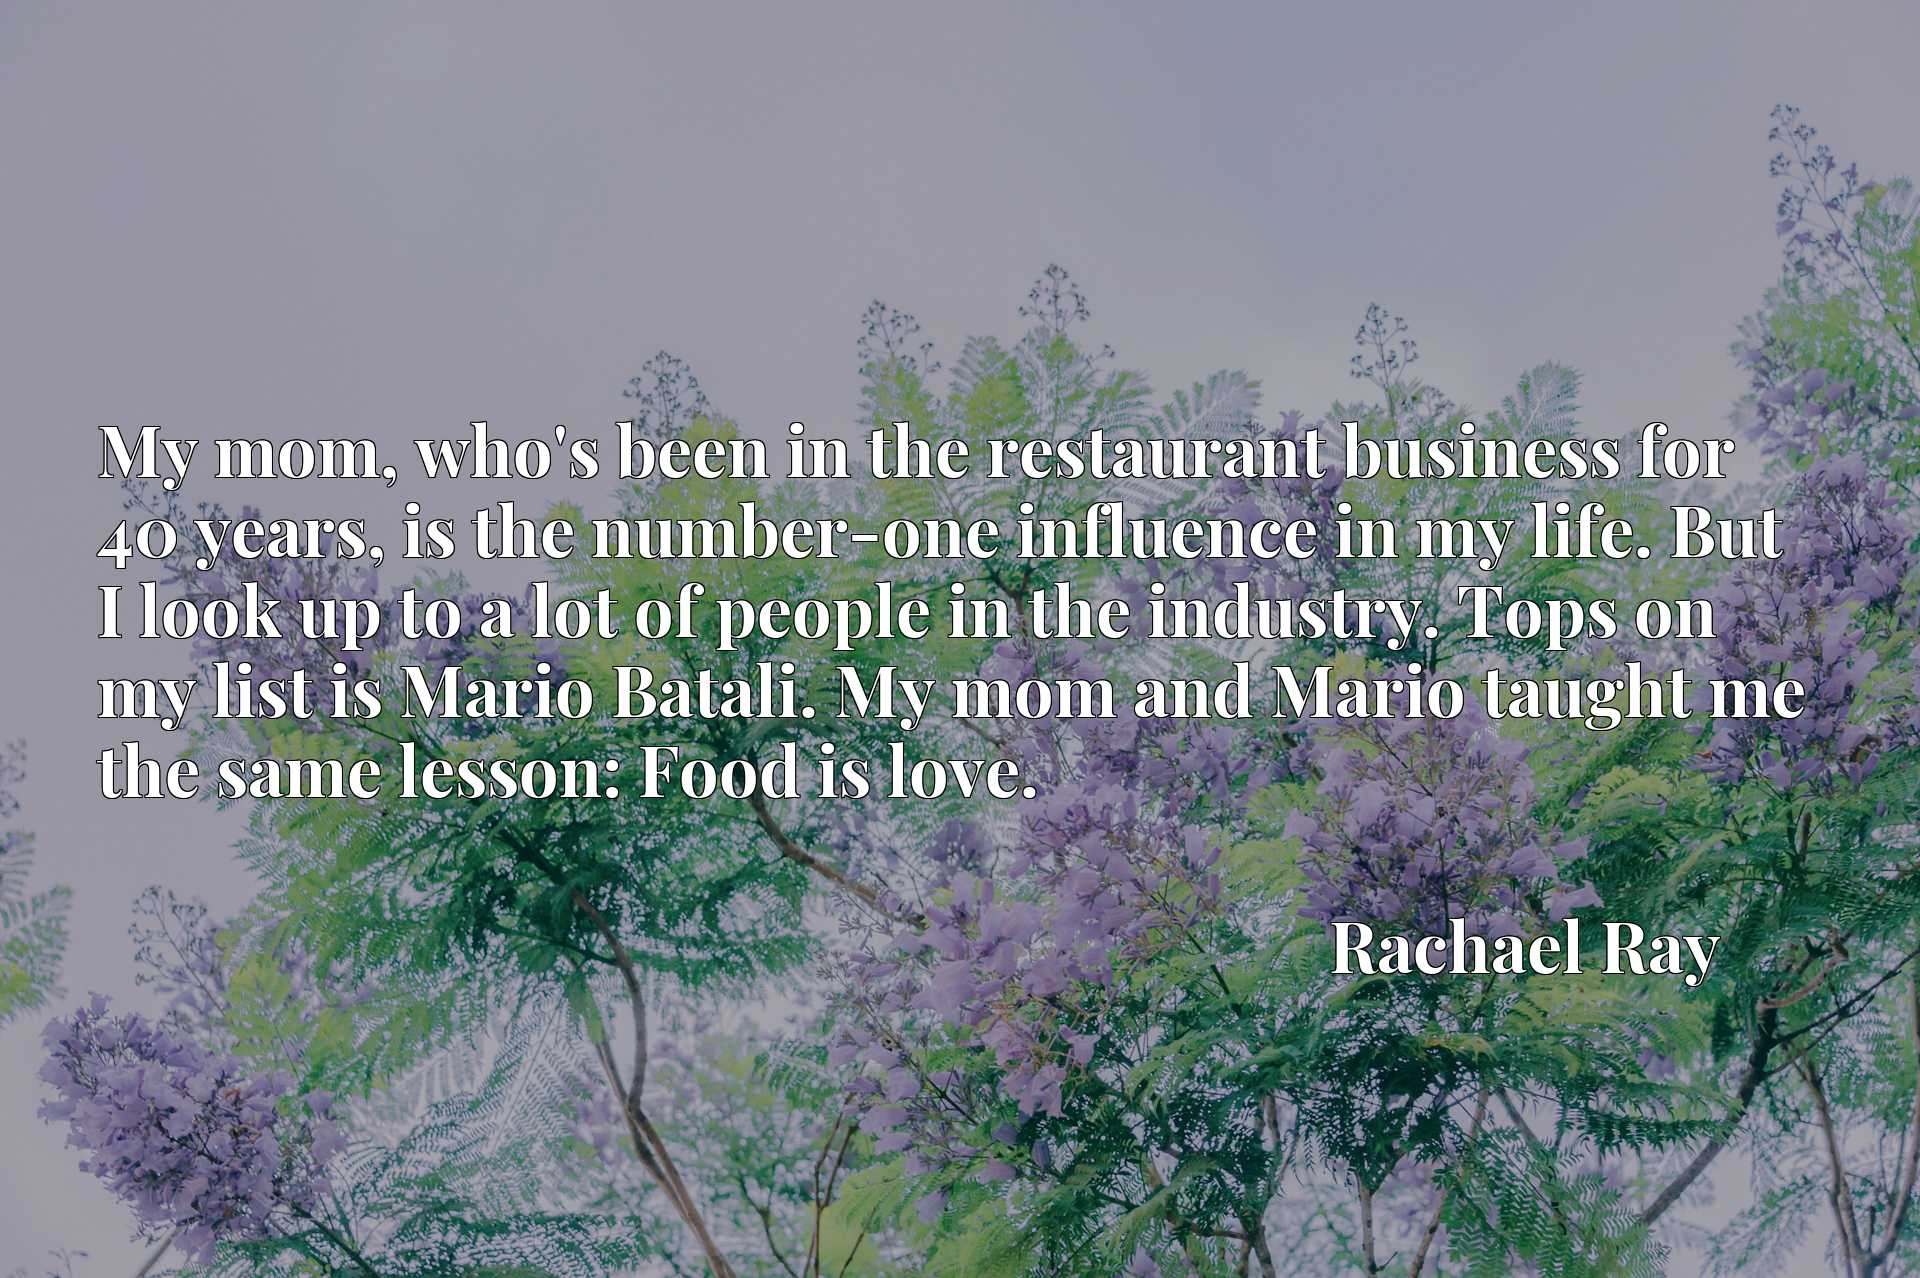 My mom, who's been in the restaurant business for 40 years, is the number-one influence in my life. But I look up to a lot of people in the industry. Tops on my list is Mario Batali. My mom and Mario taught me the same lesson: Food is love.